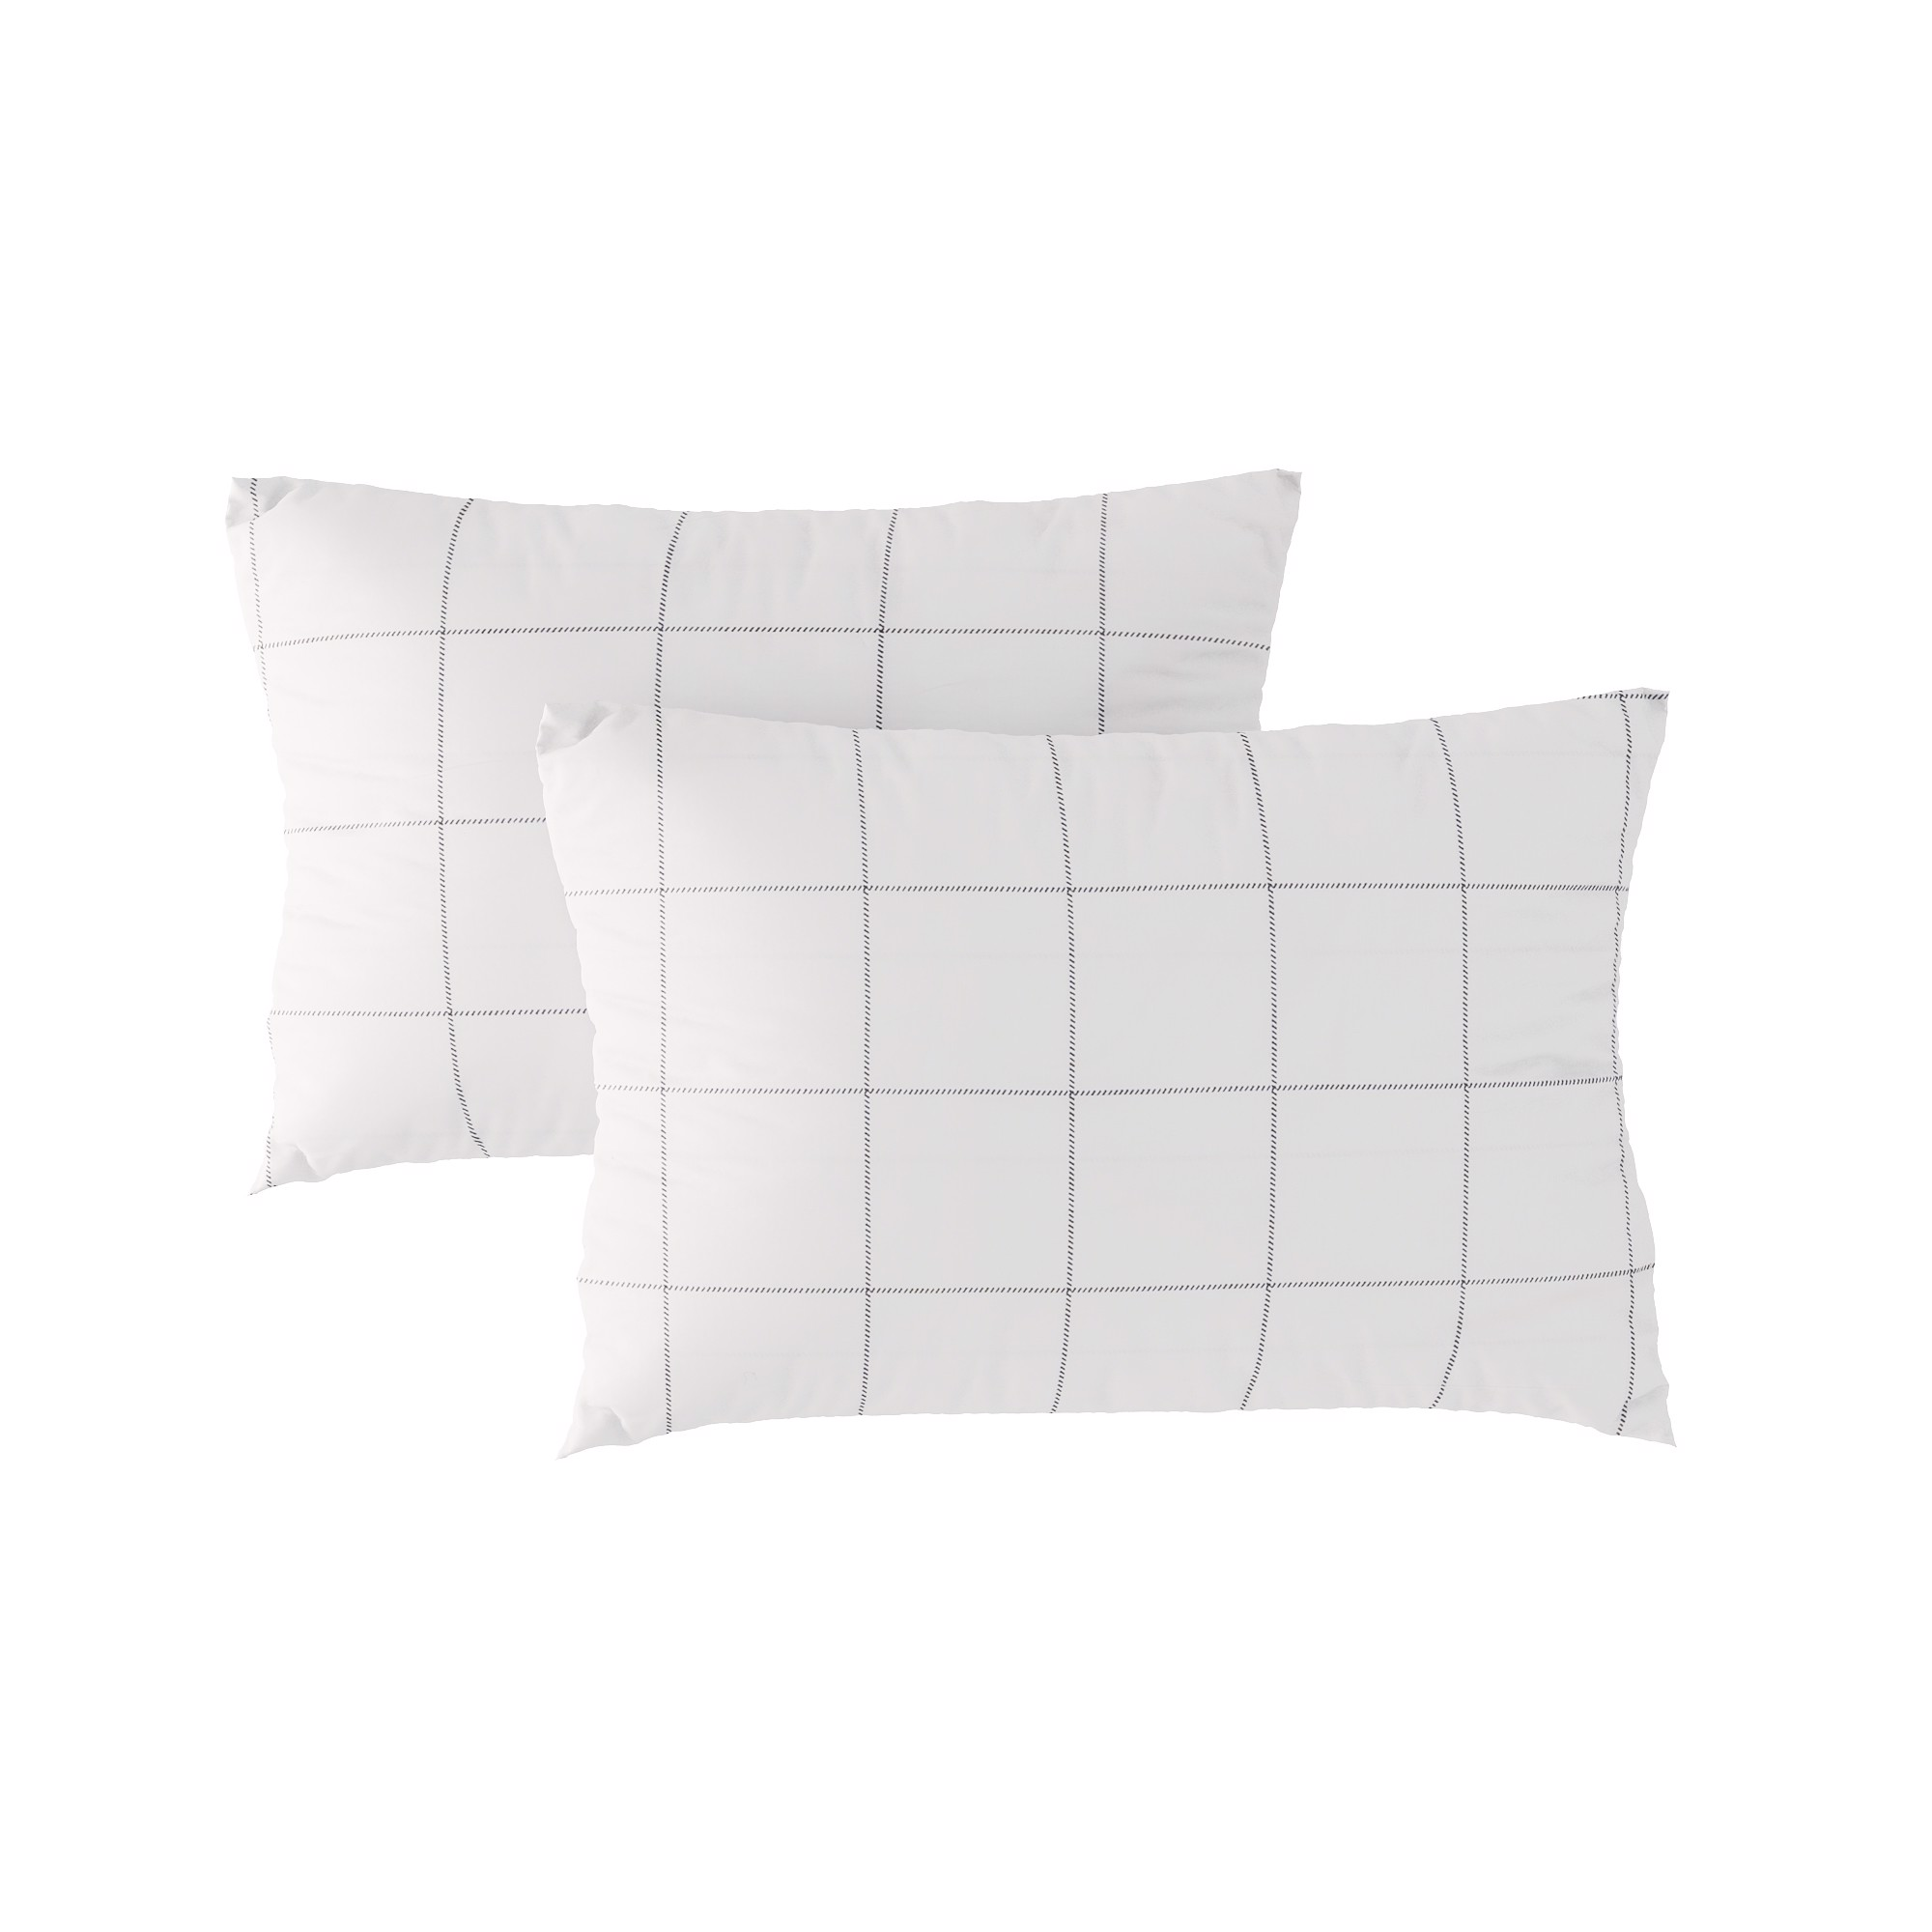 Pillow case 193 Black grid on white